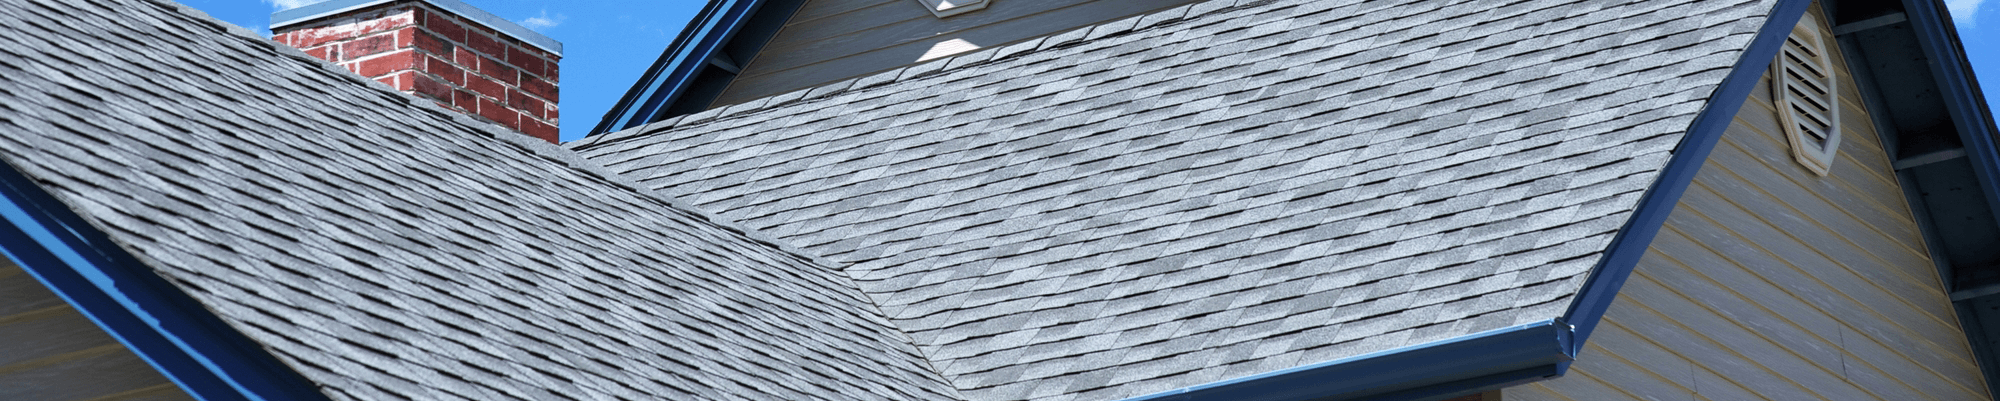 Repairing shingles on a roof in Frisco, TX